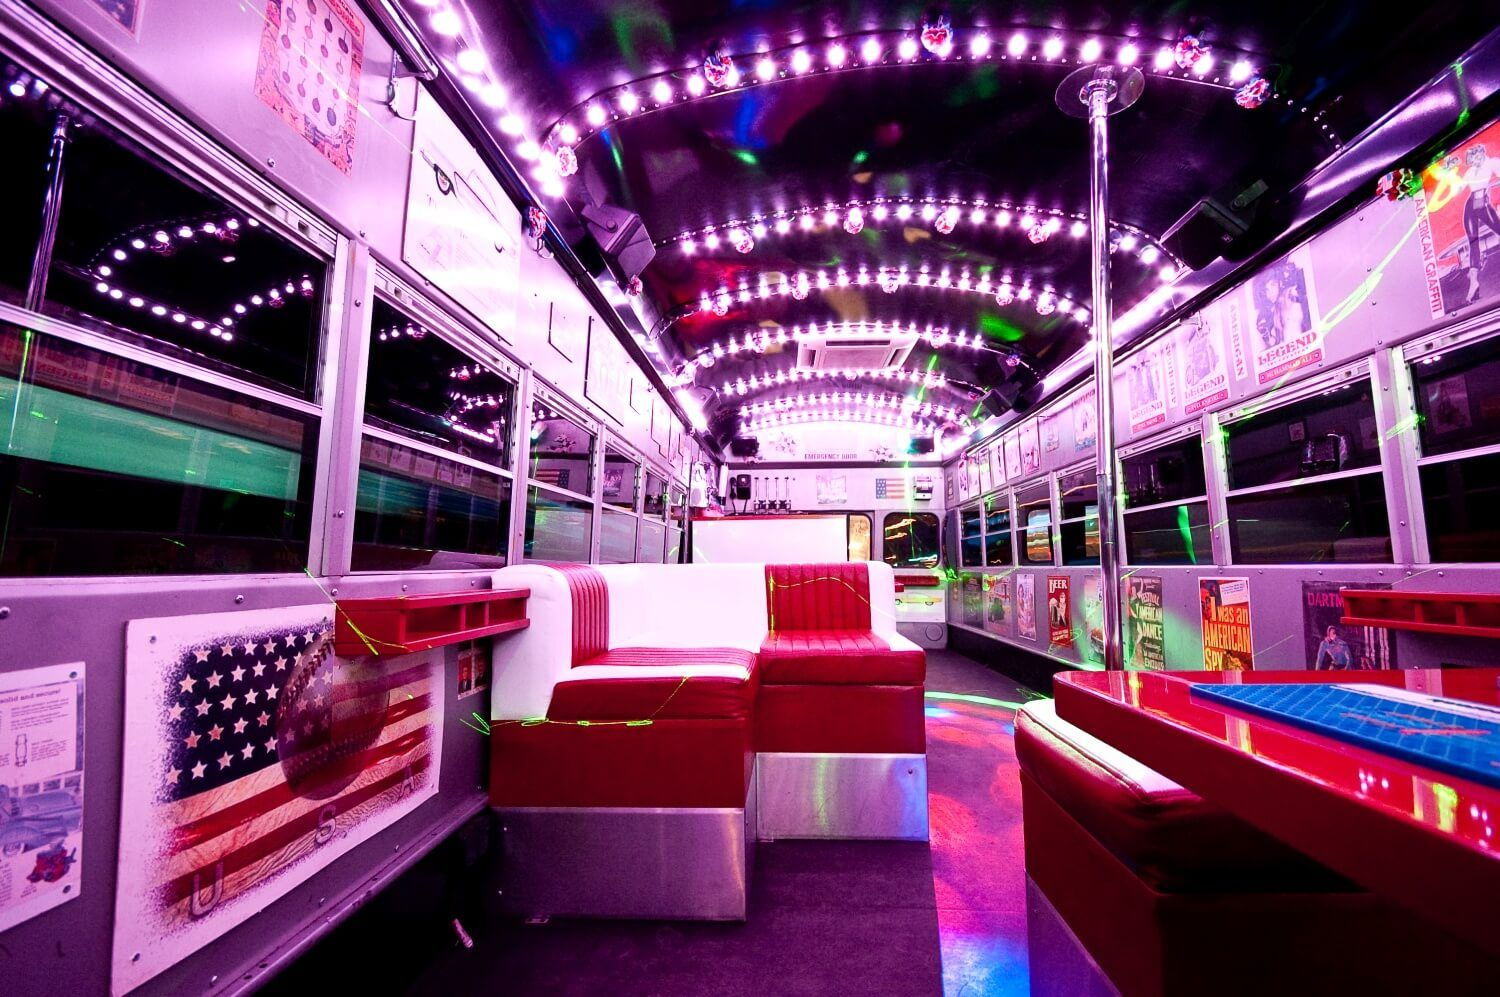 American-style party bus in Warsaw